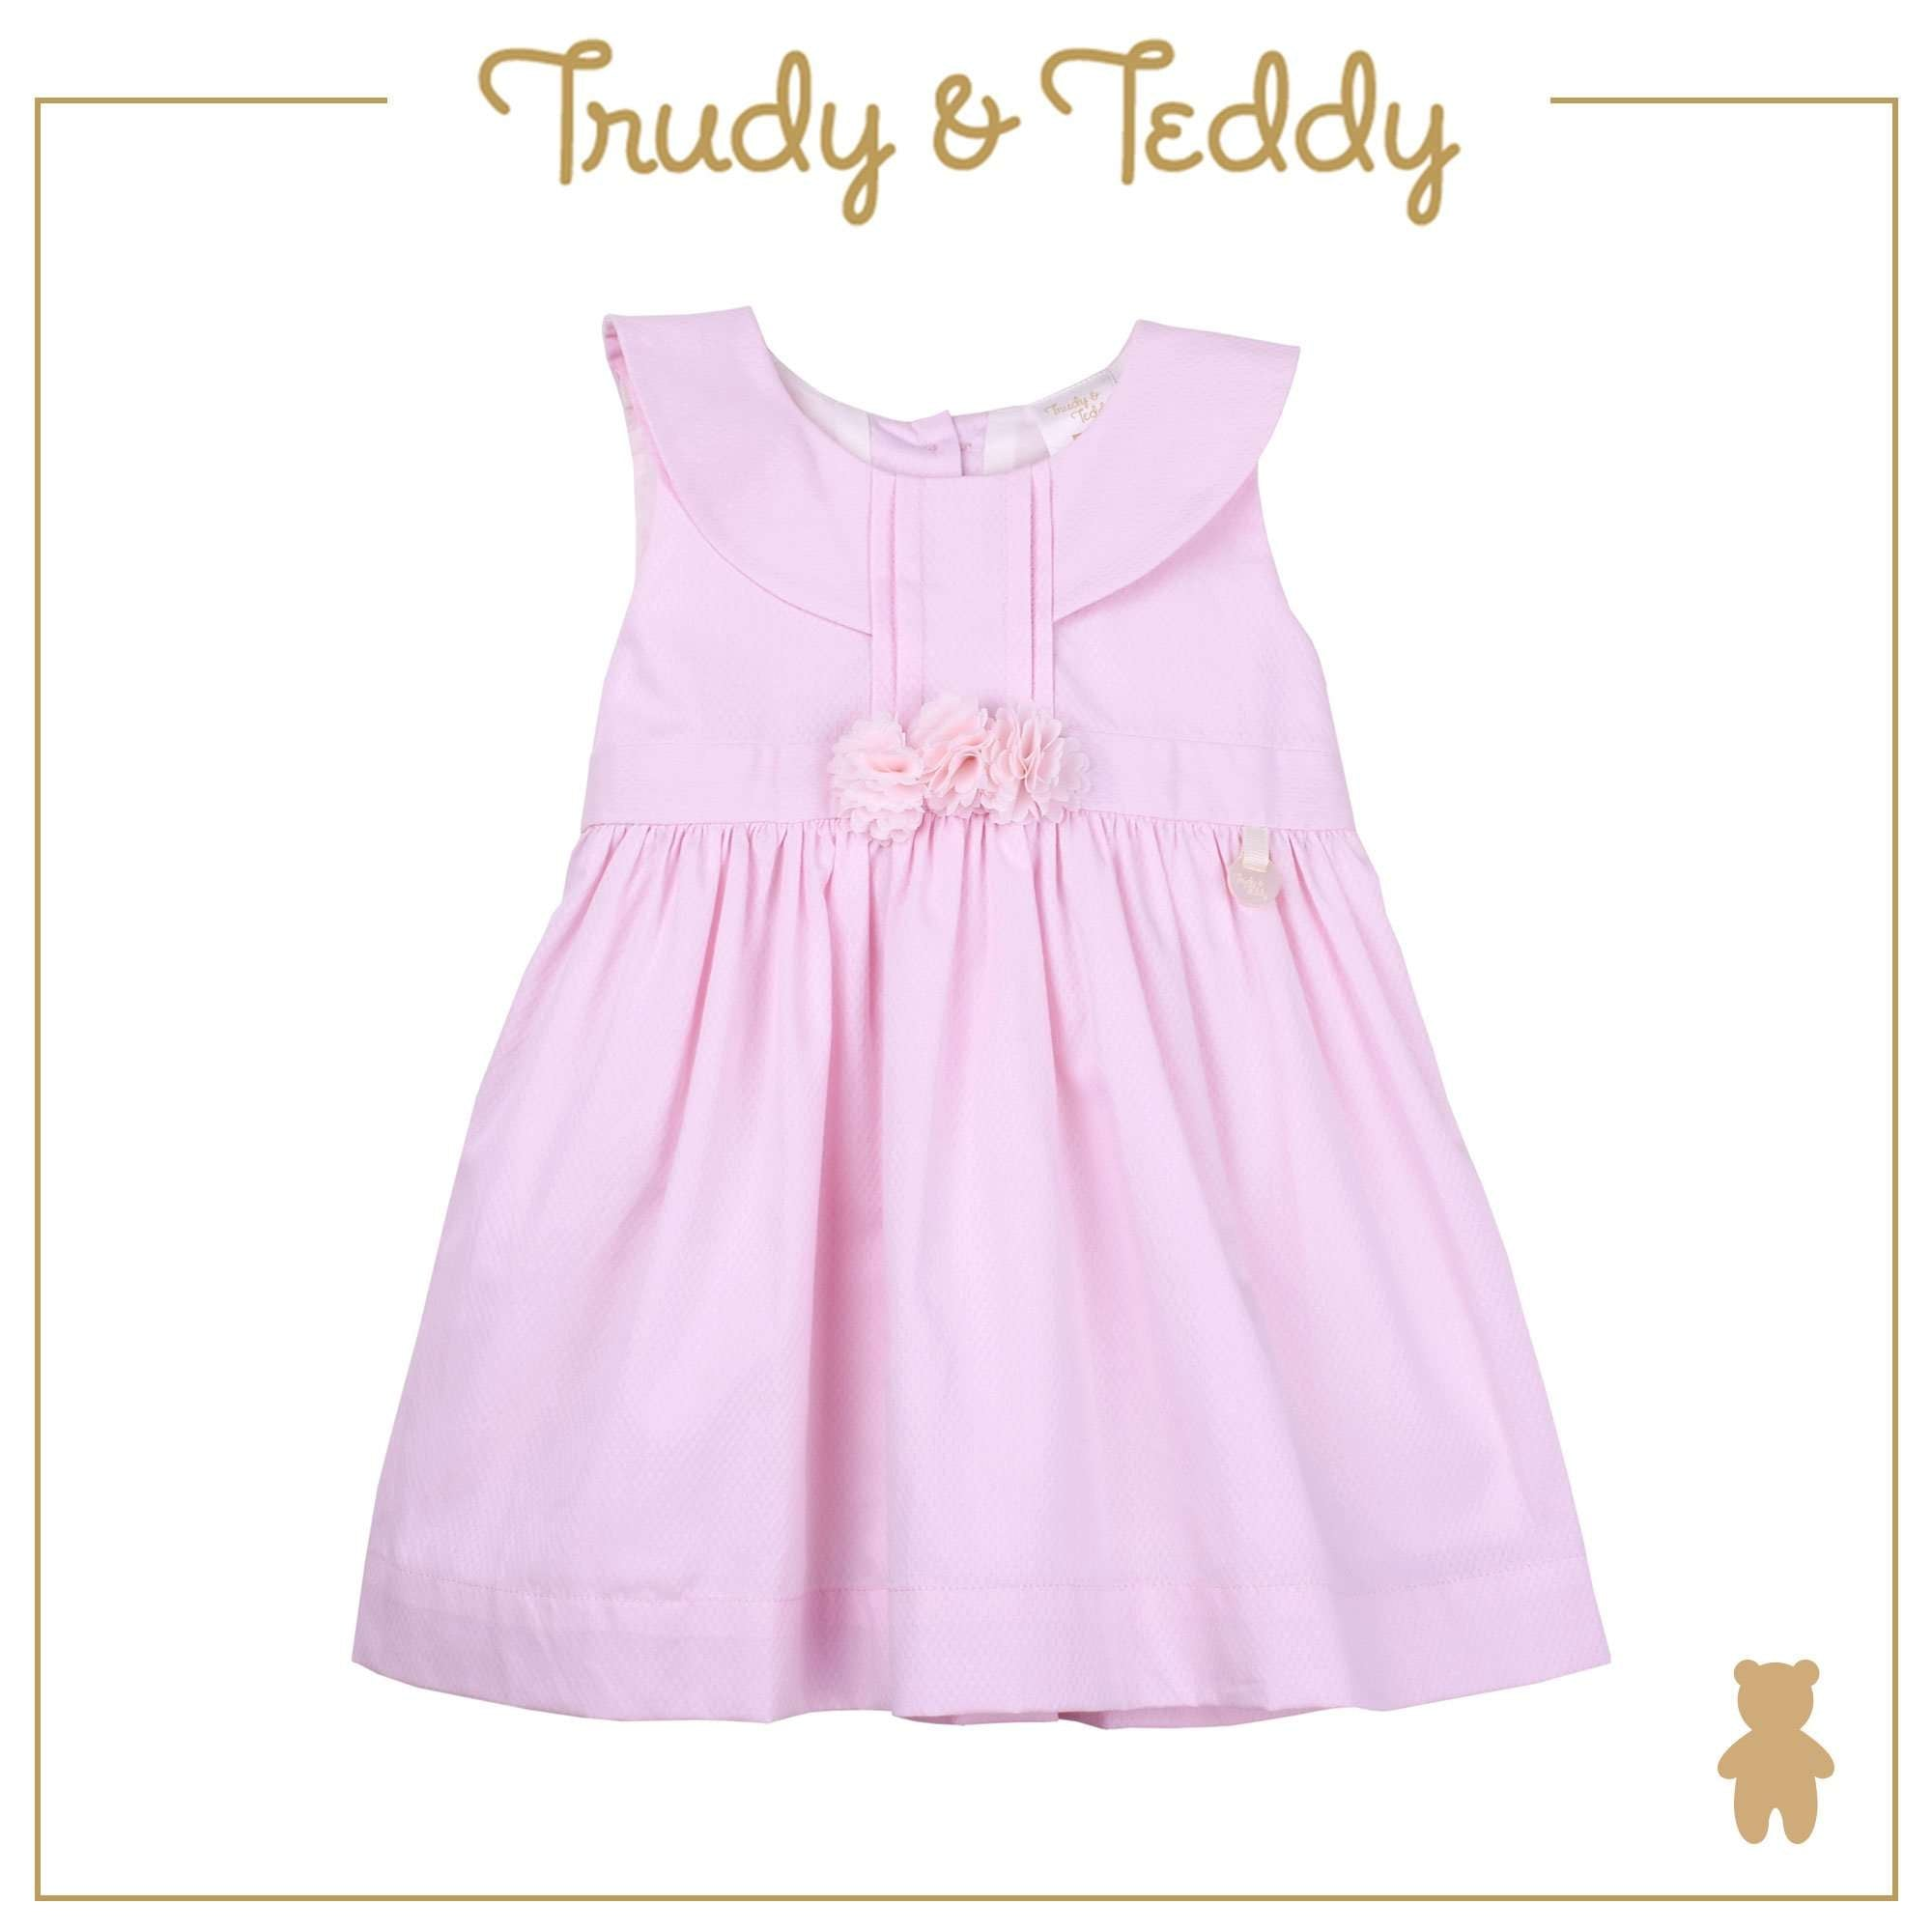 Trudy & Teddy Baby Girl Sleeveless Dress - Light Pink T924002-3136-P1 : Buy Trudy & Teddy online at CMG.MY